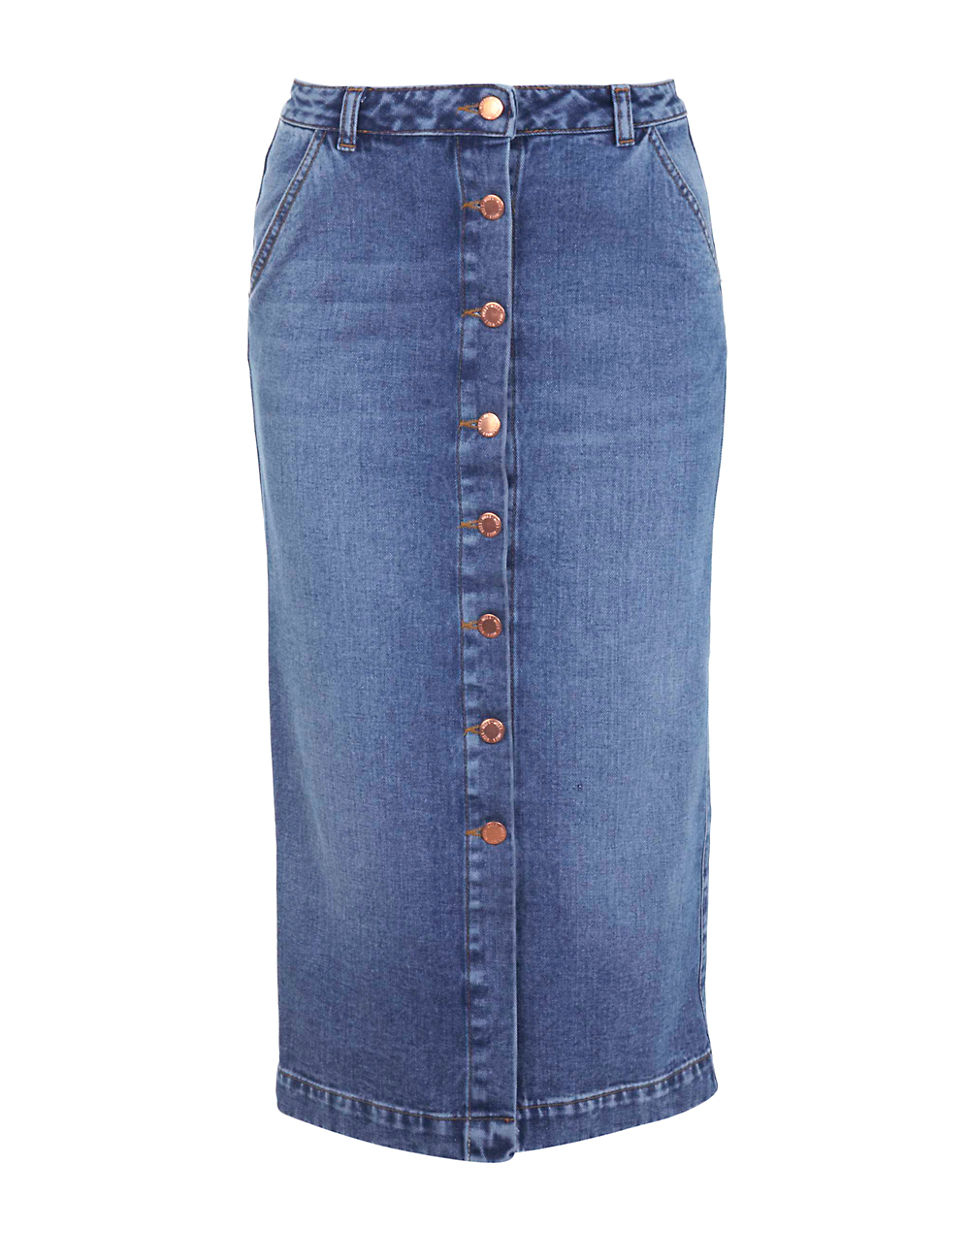 Miss selfridge Denim Button Front Midi Skirt in Blue | Lyst